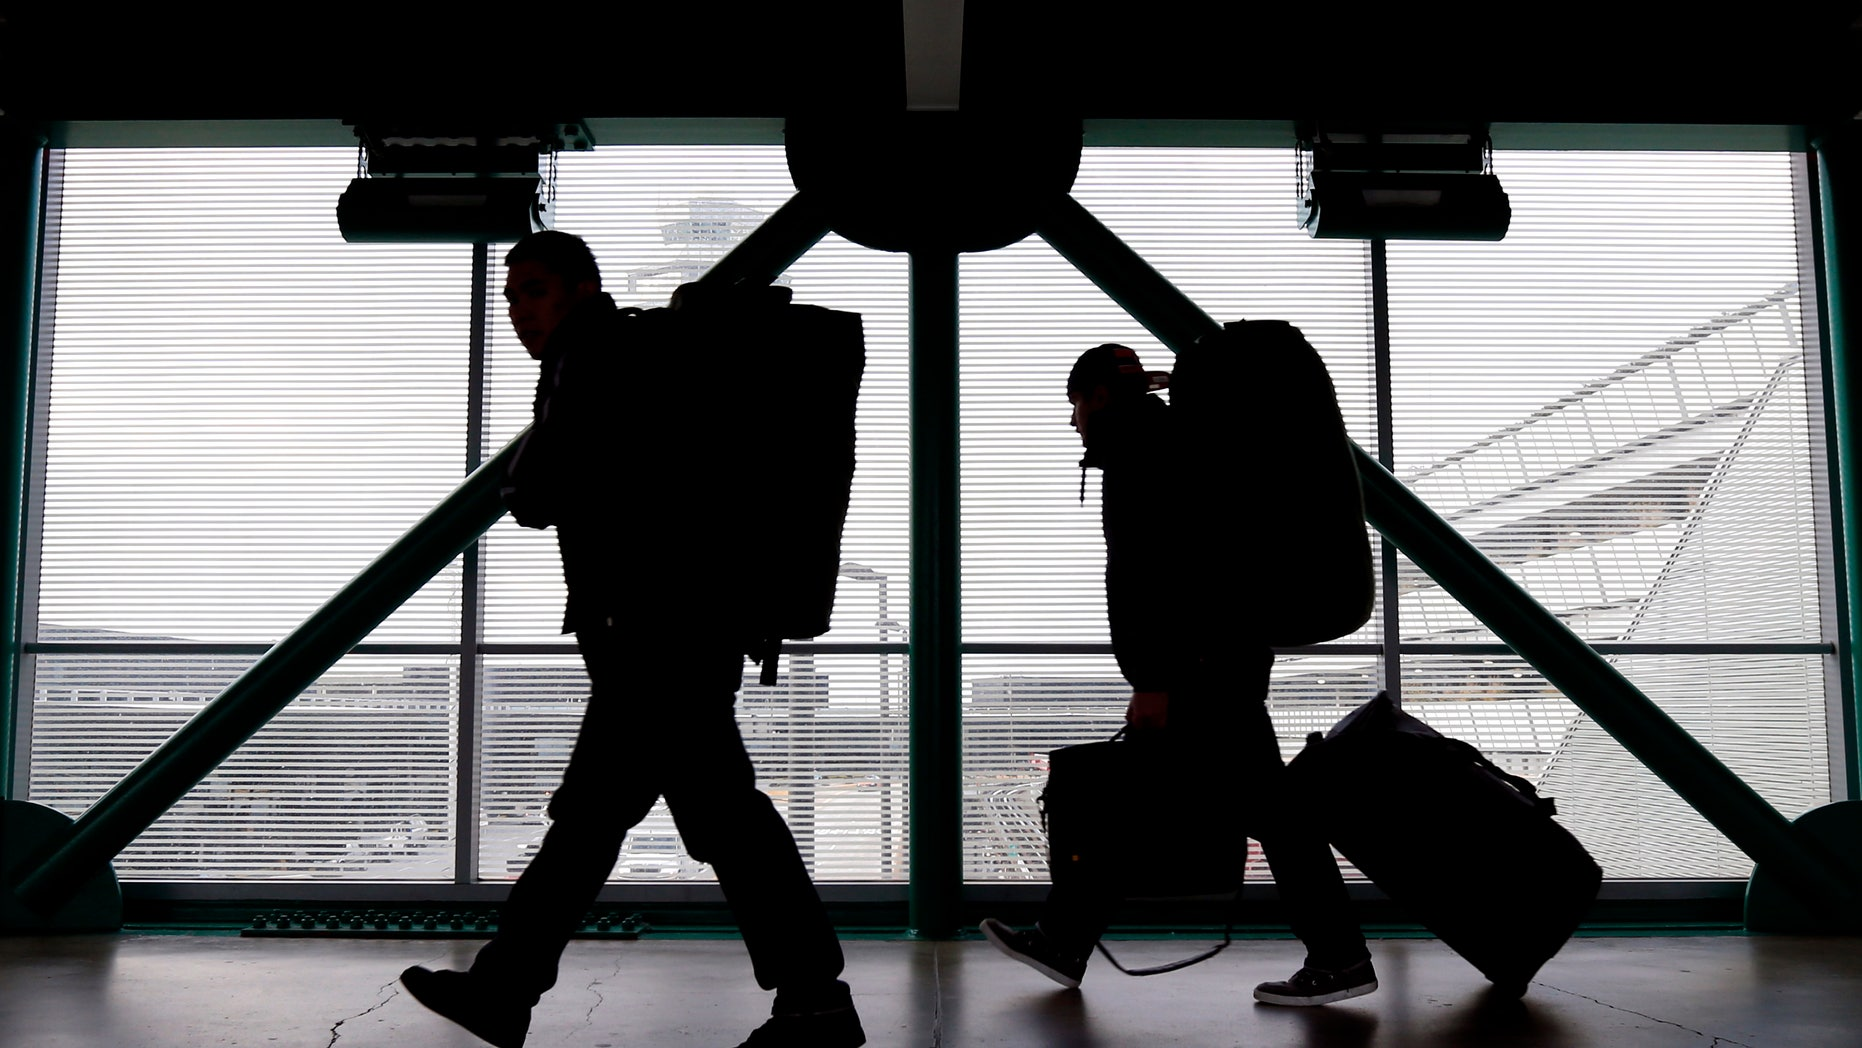 As airlines offer a proliferating list of add-on services, from early boarding to premium seating and baggage fees, the ability to comparison-shop for the lowest total fare is eroding.